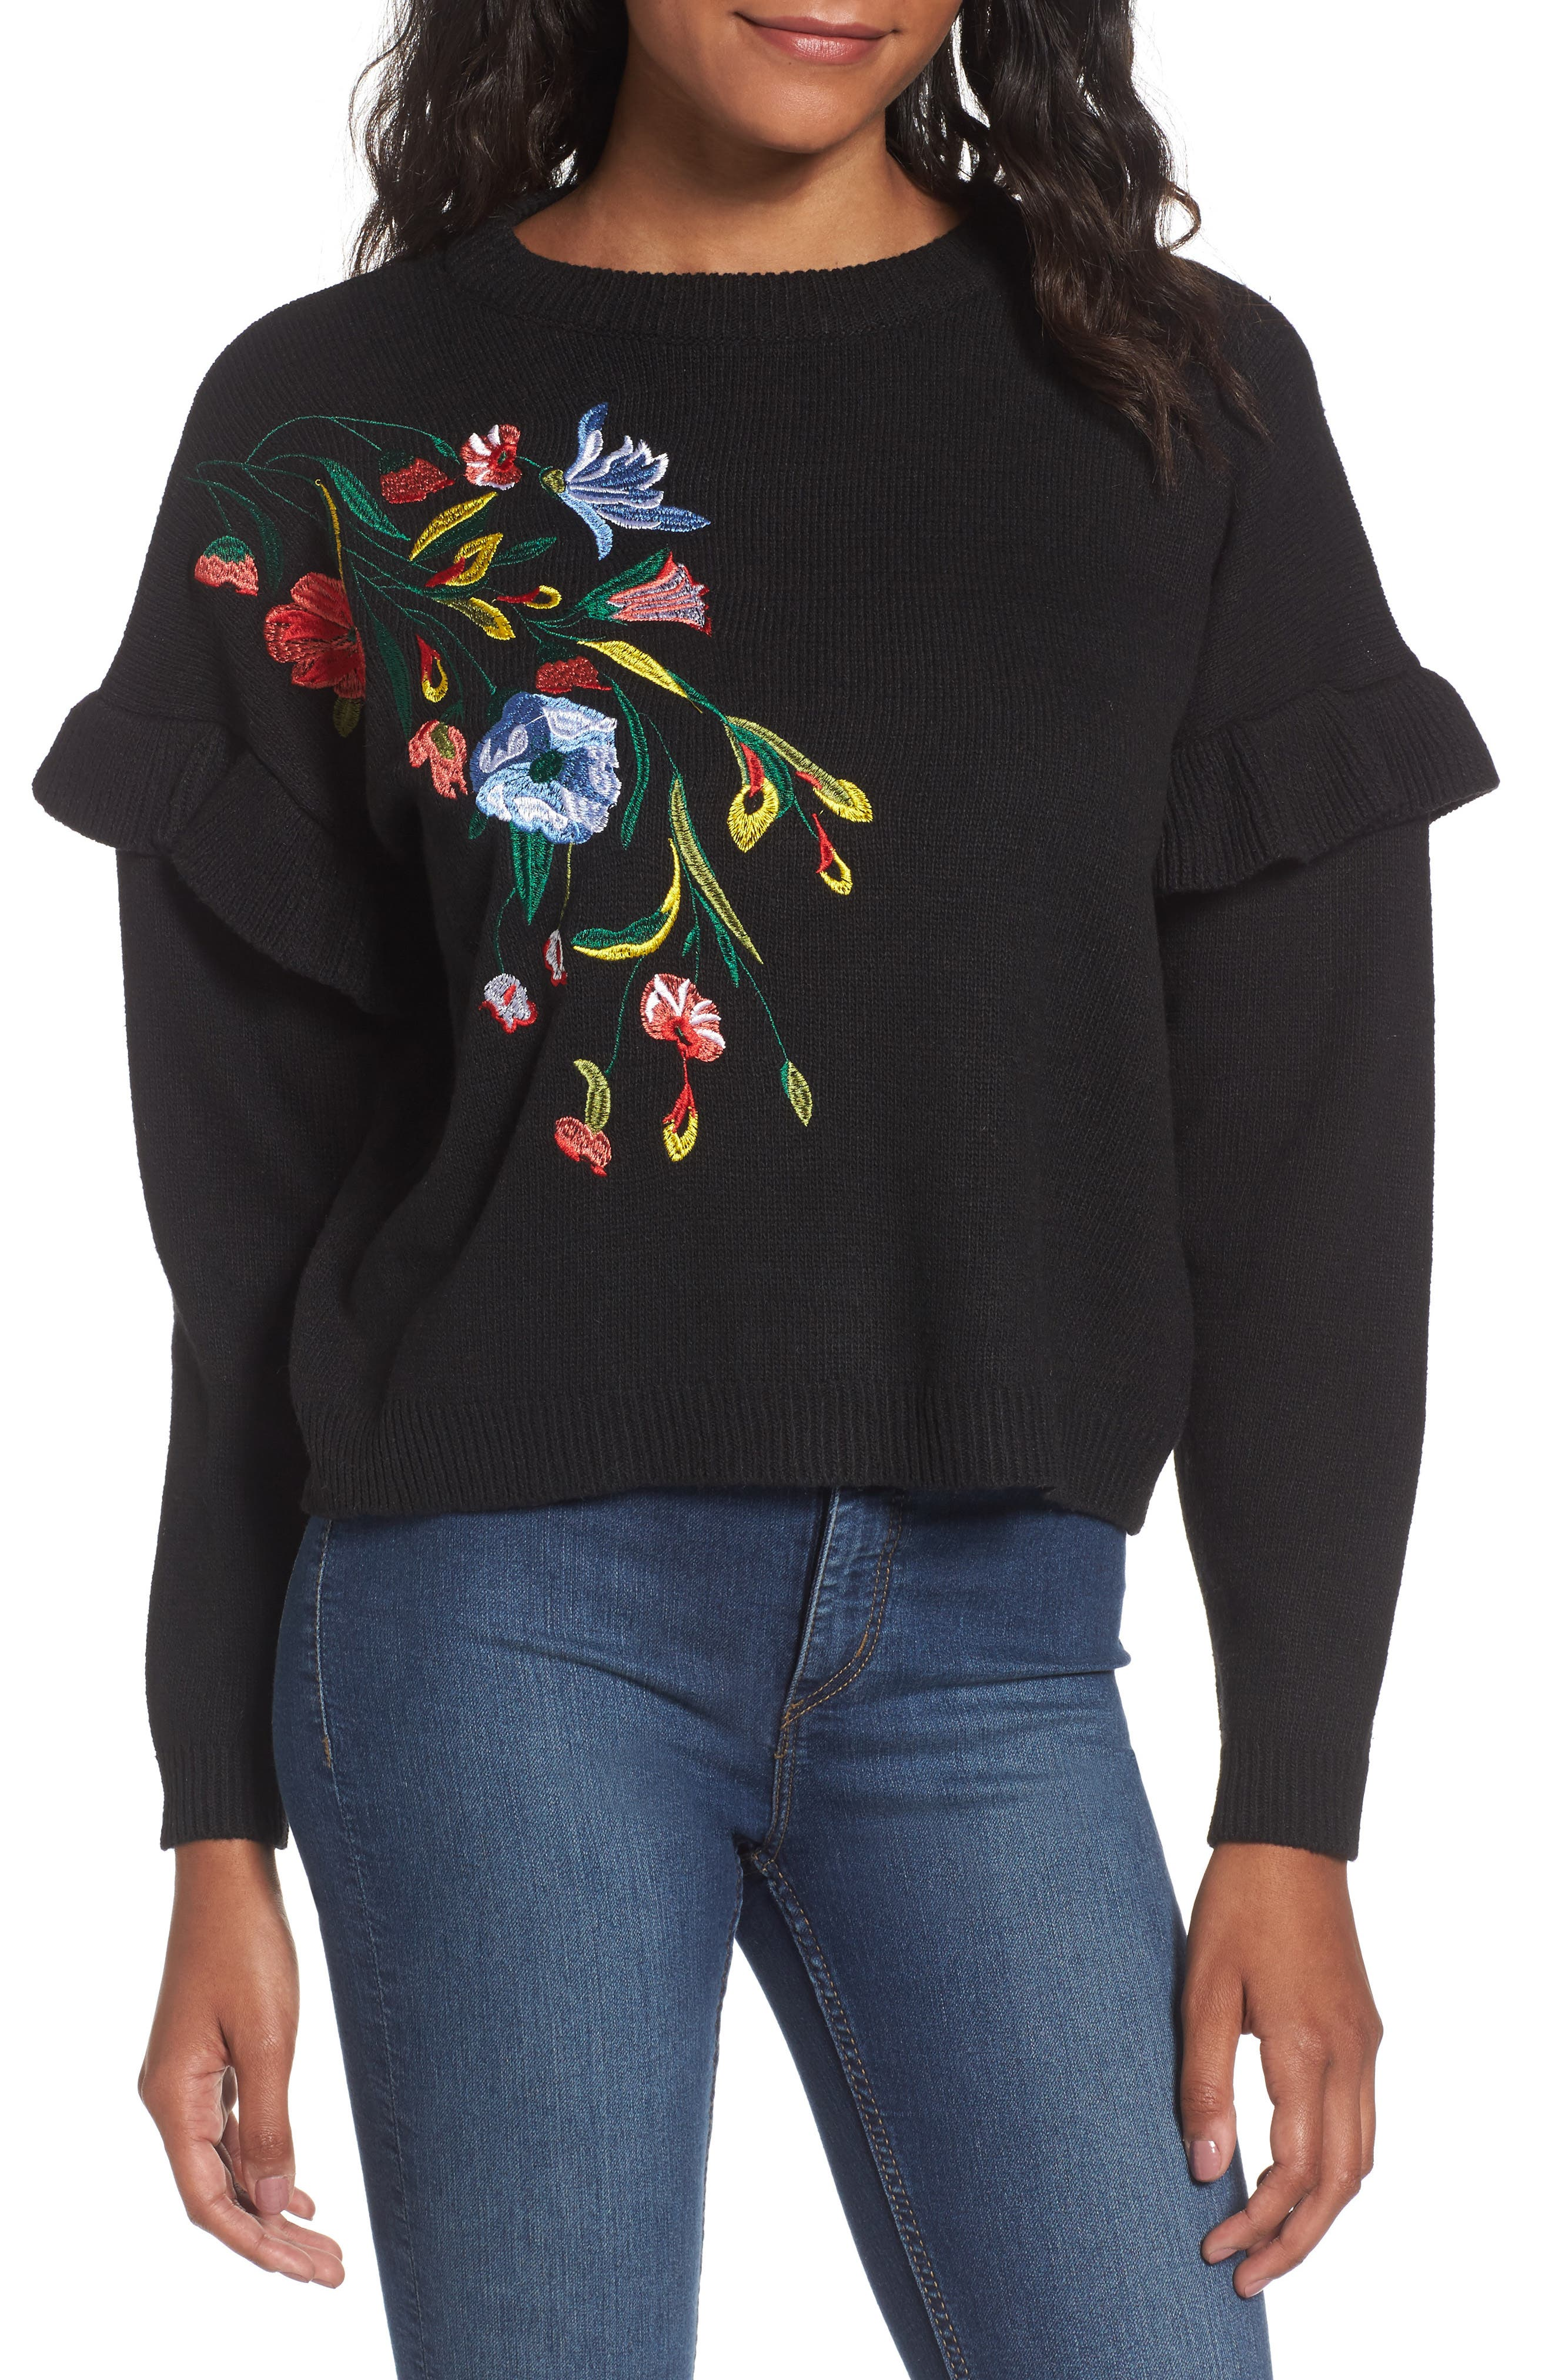 Ruffle Sleeve Embroidered Sweater,                             Main thumbnail 1, color,                             001